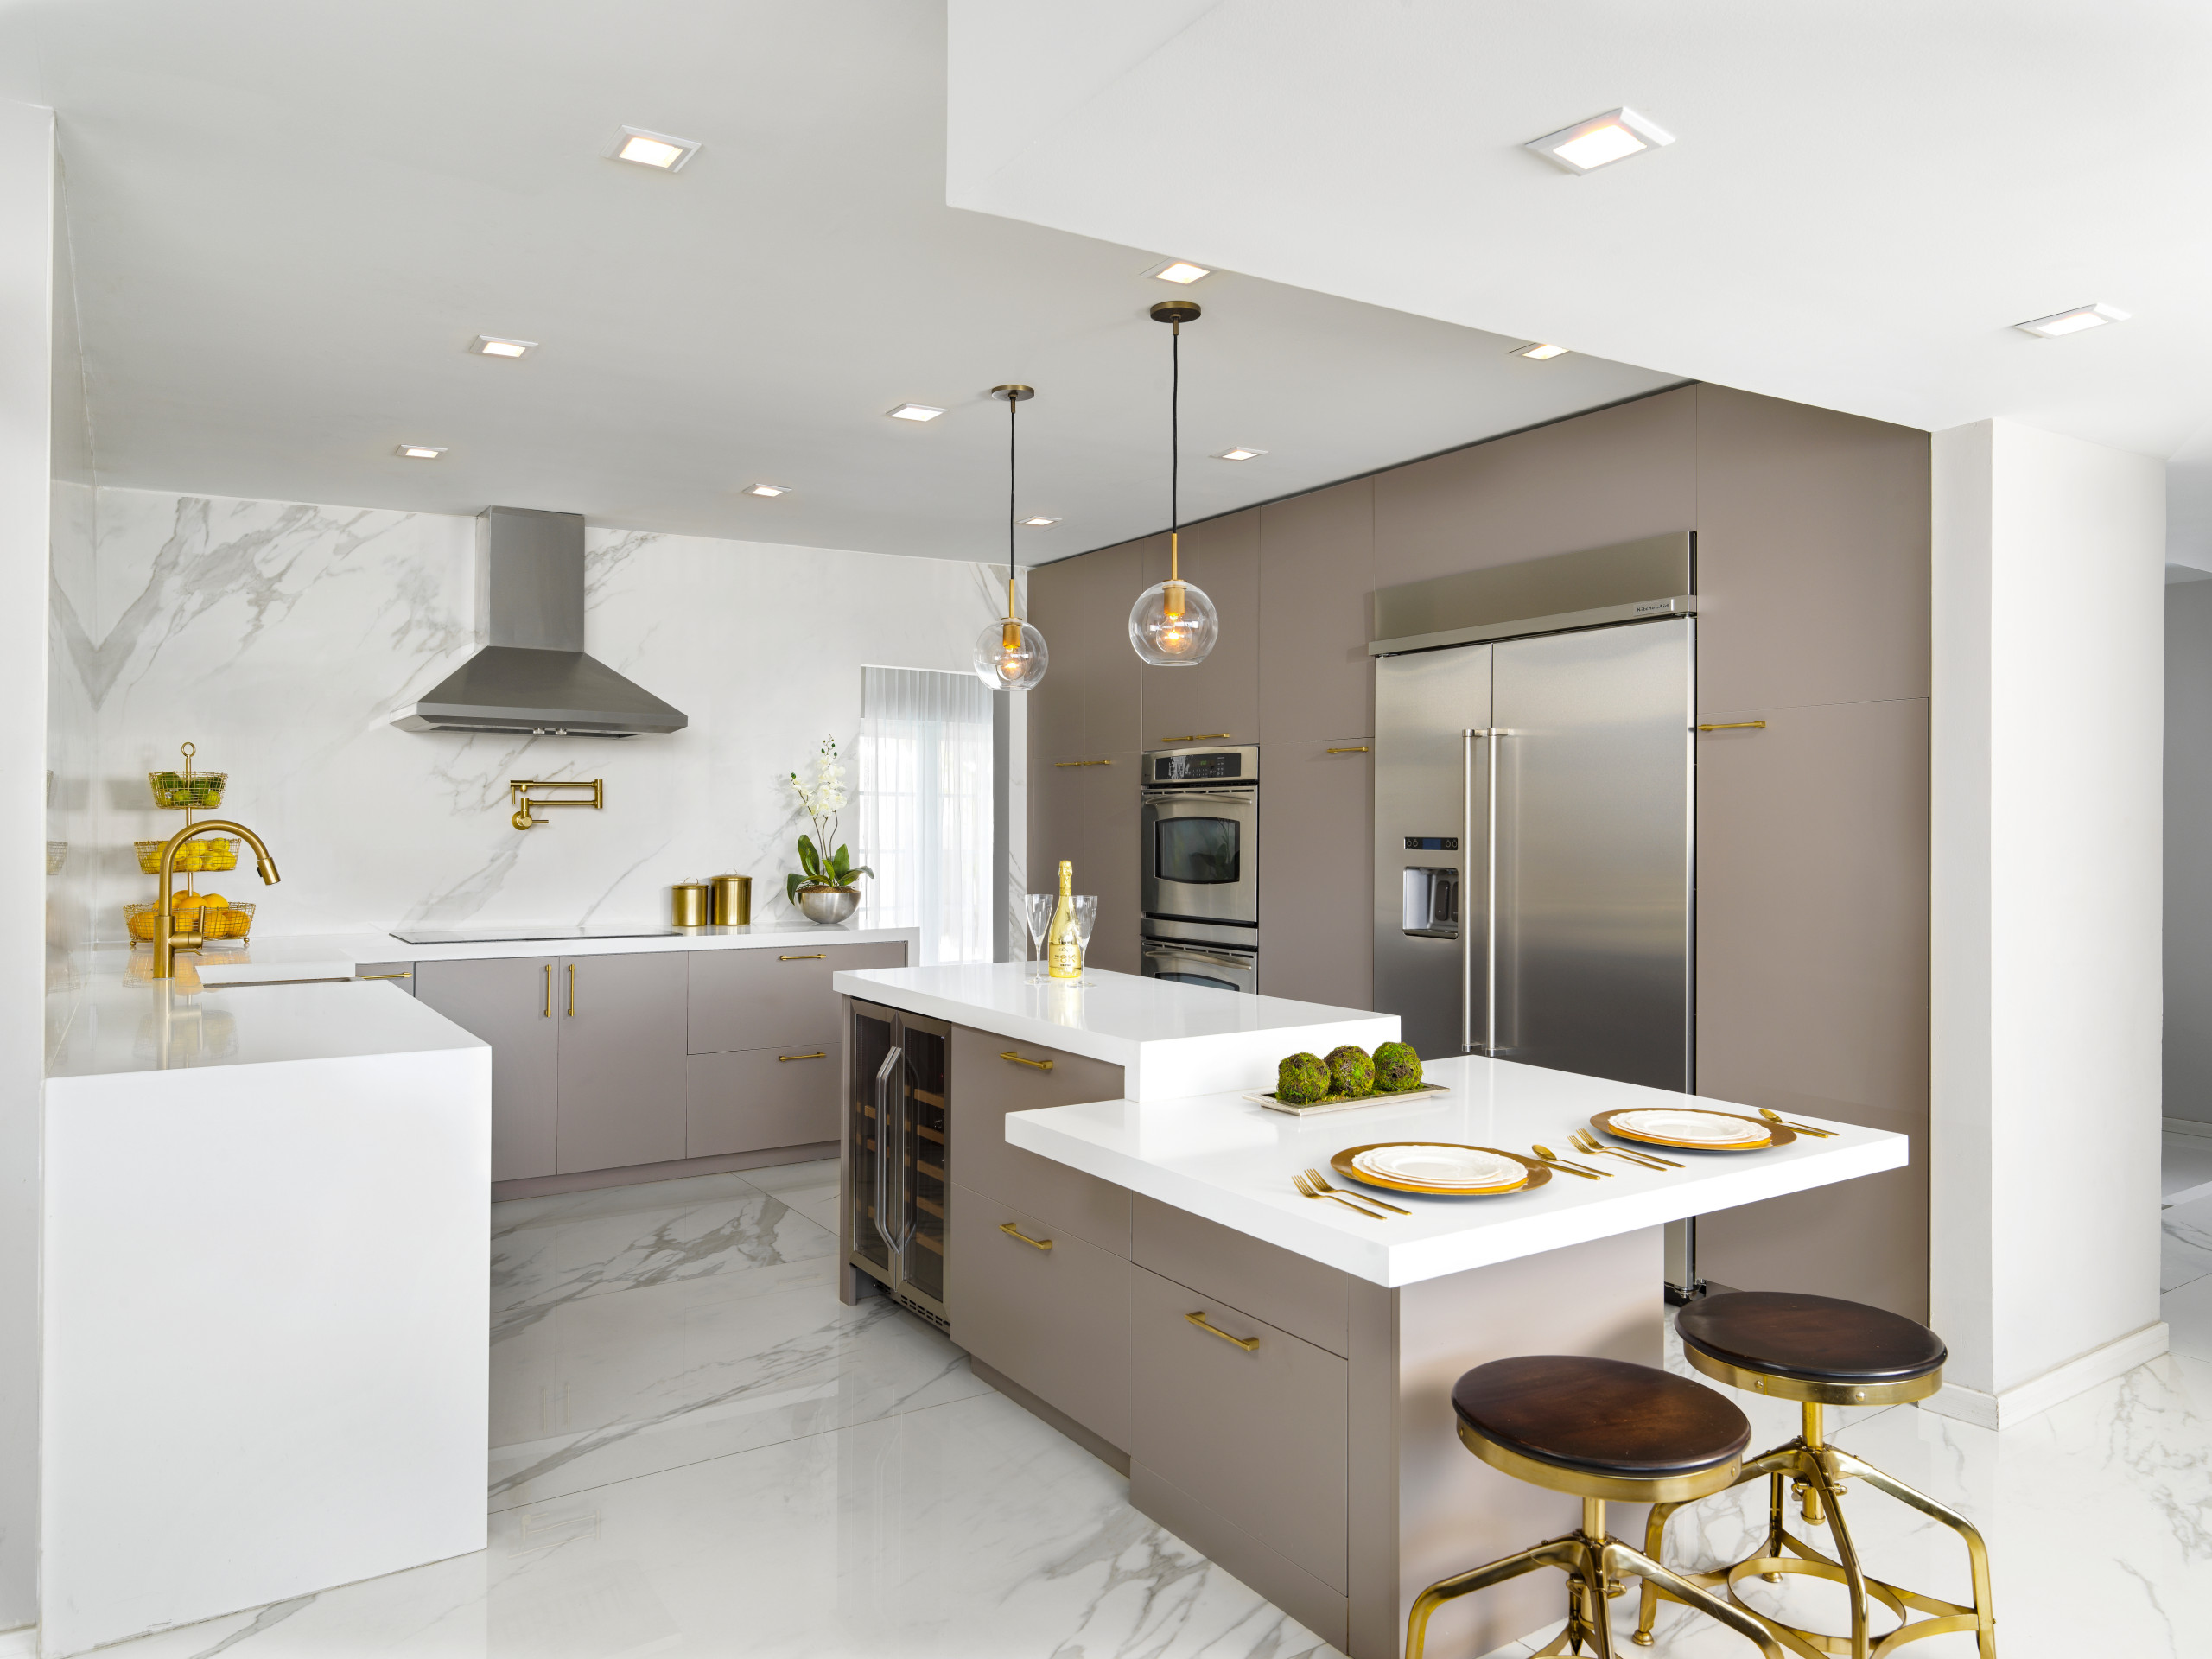 75 Beautiful White Marble Floor Kitchen Pictures Ideas January 2021 Houzz